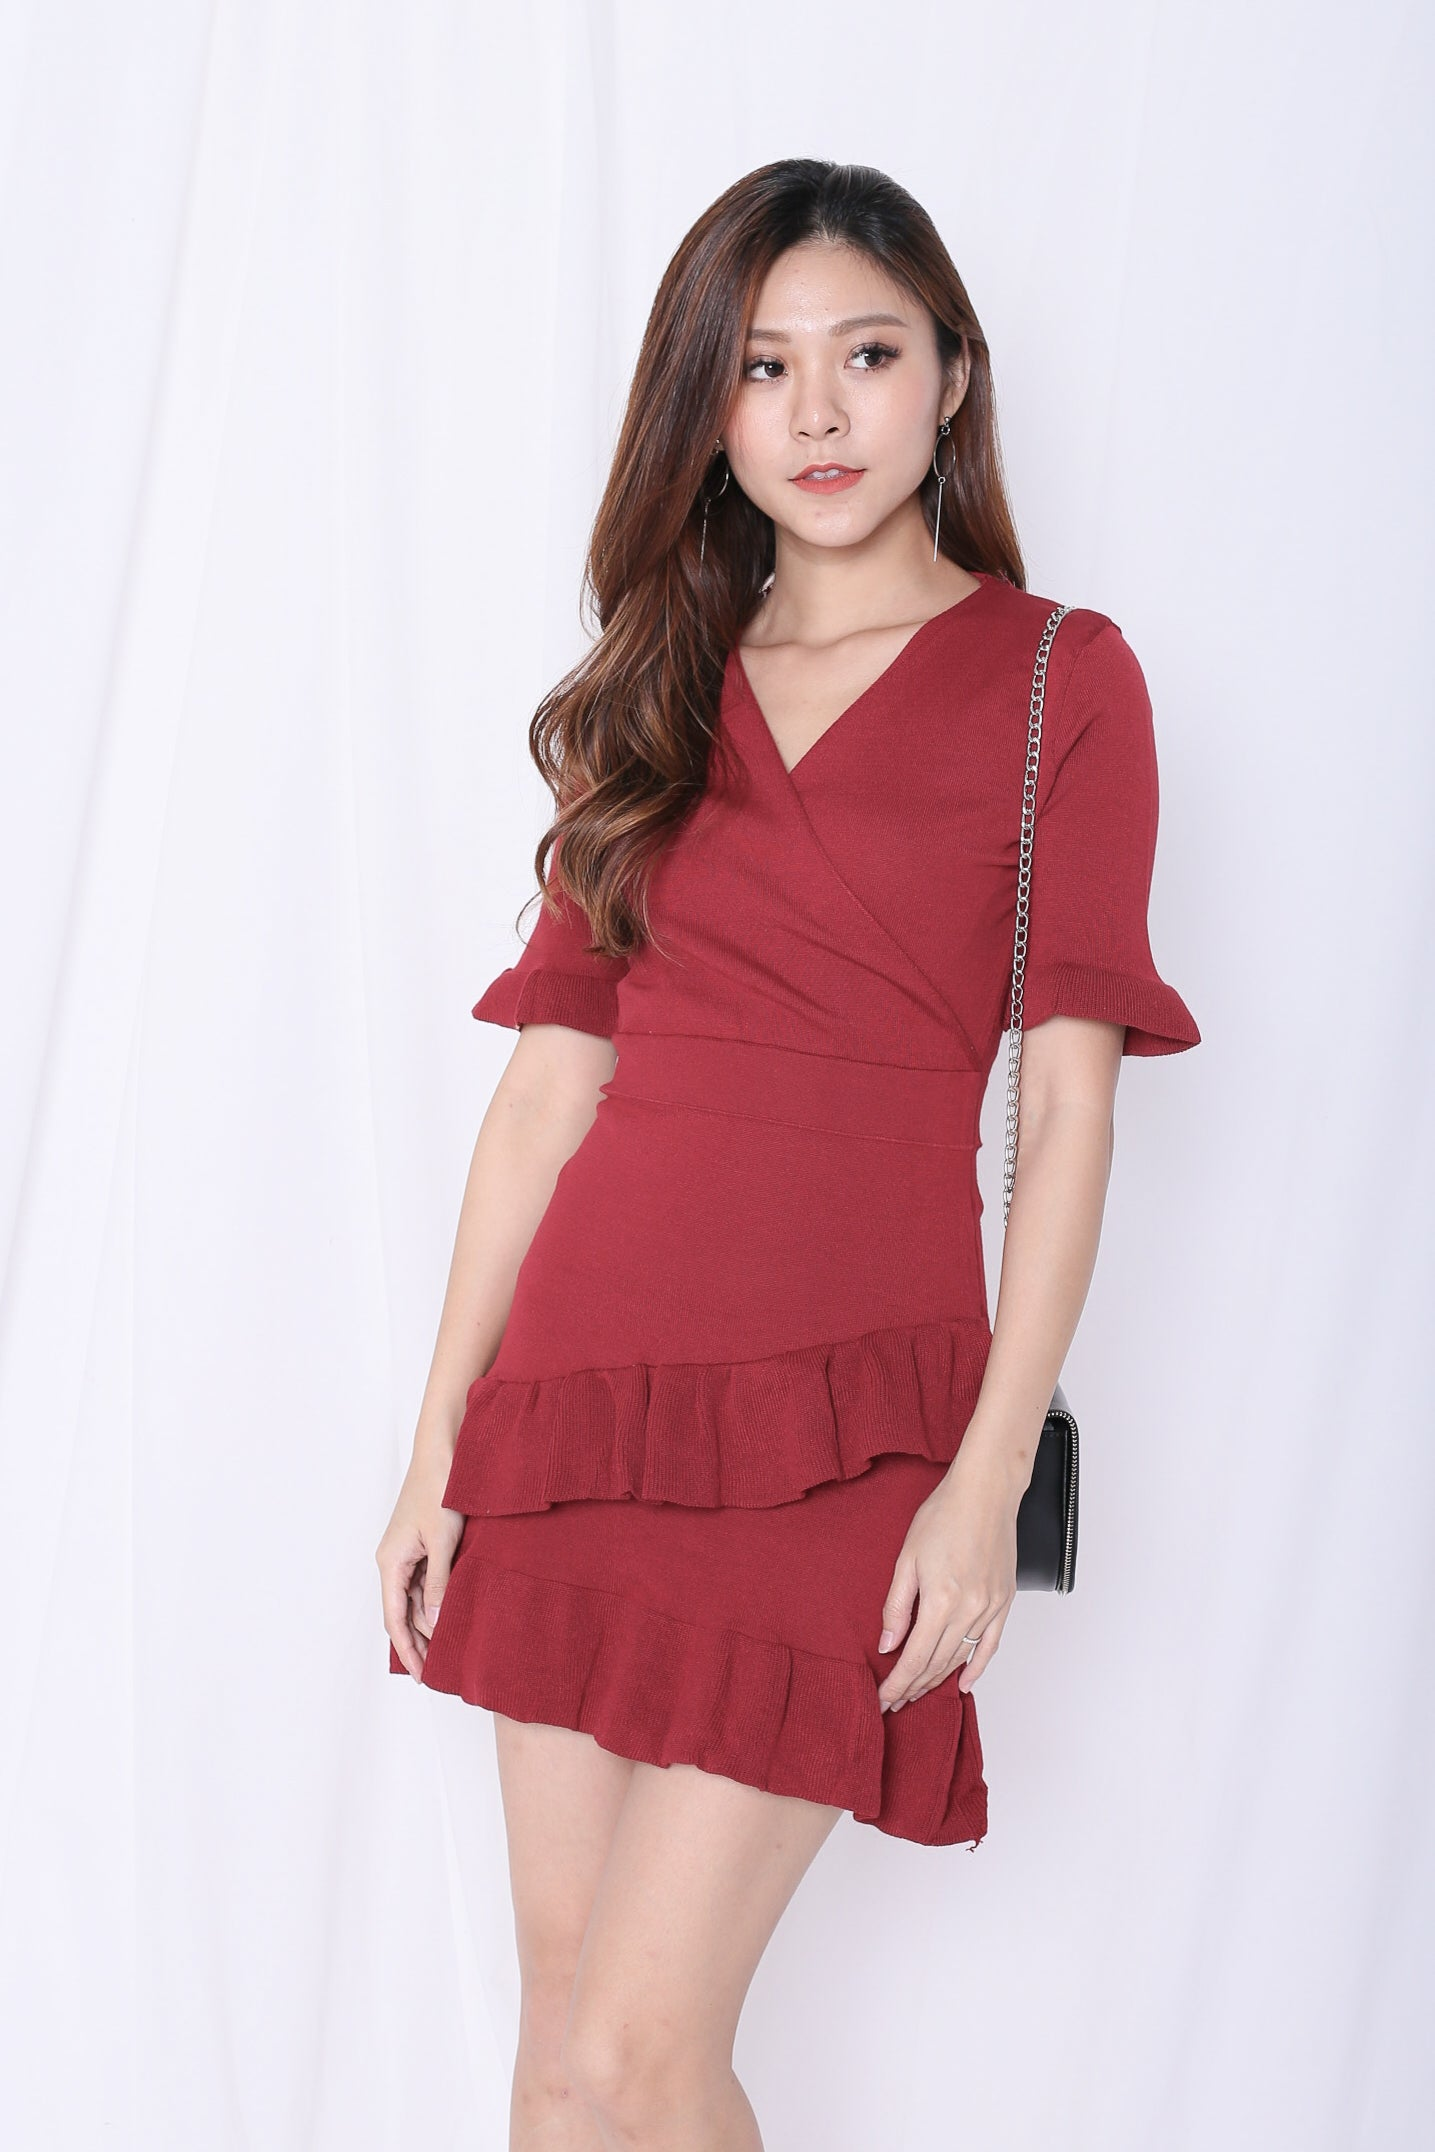 GYPSY RUFFLES KNIT DRESS IN WINE